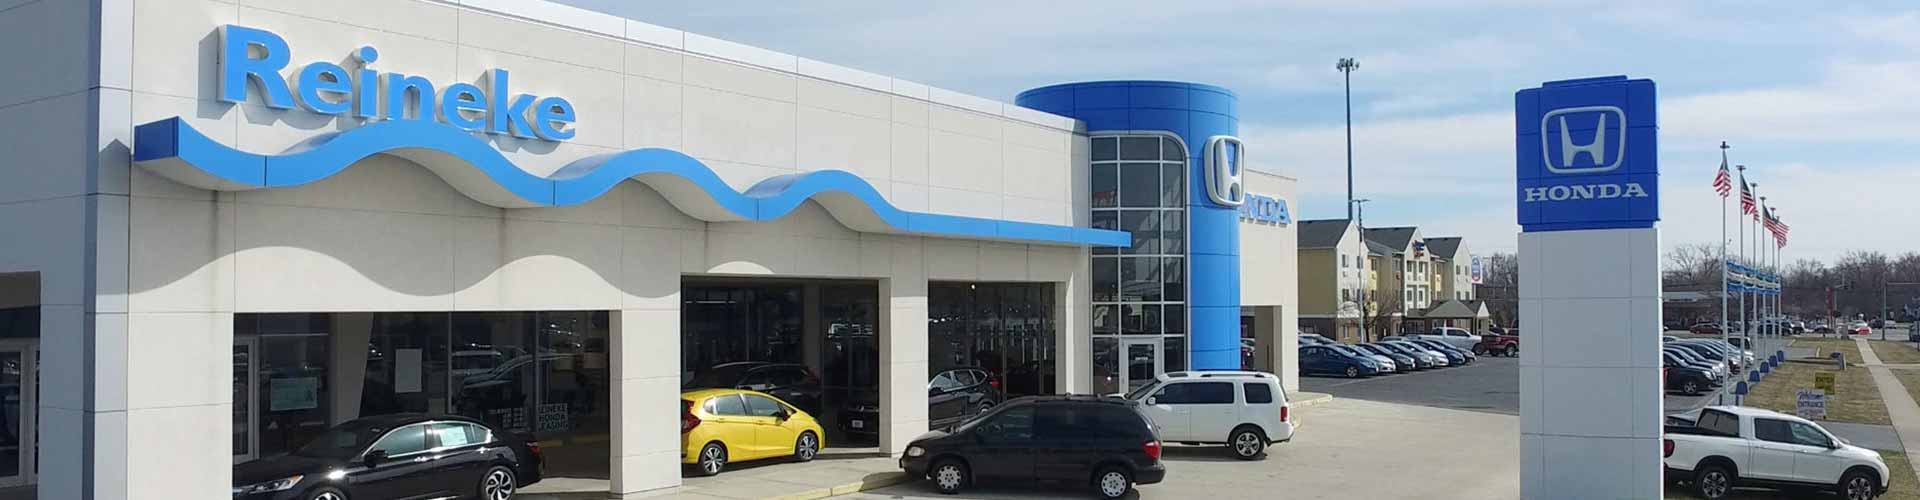 Reineke Honda Dealership